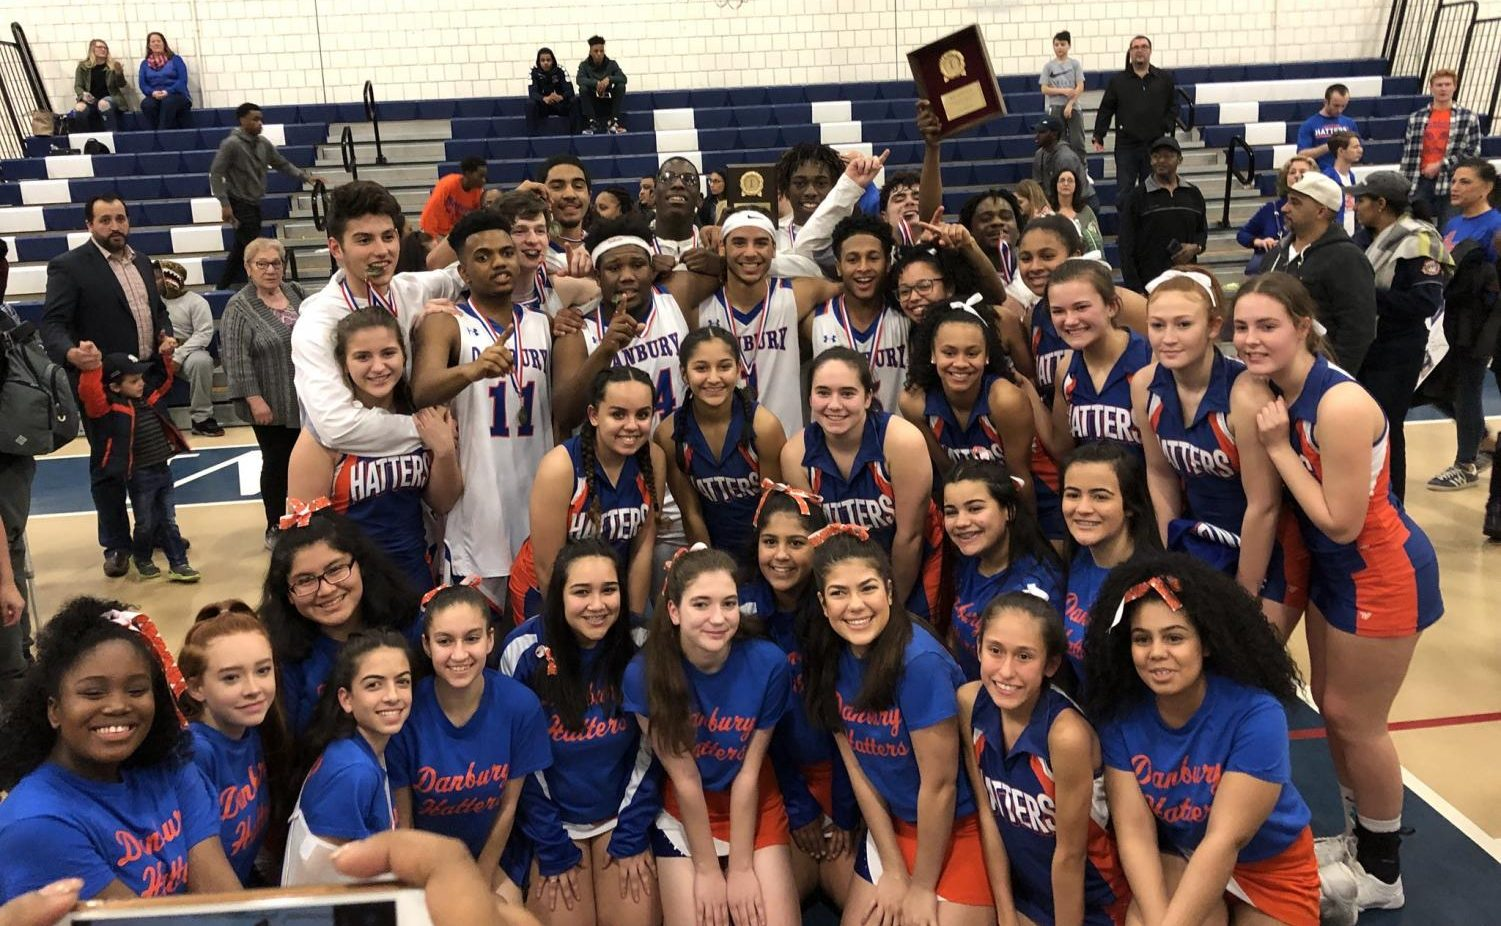 The Danbury boys' basketball team celebrates its FCIAC championship win over Trumbull with fans and cheerleaders.